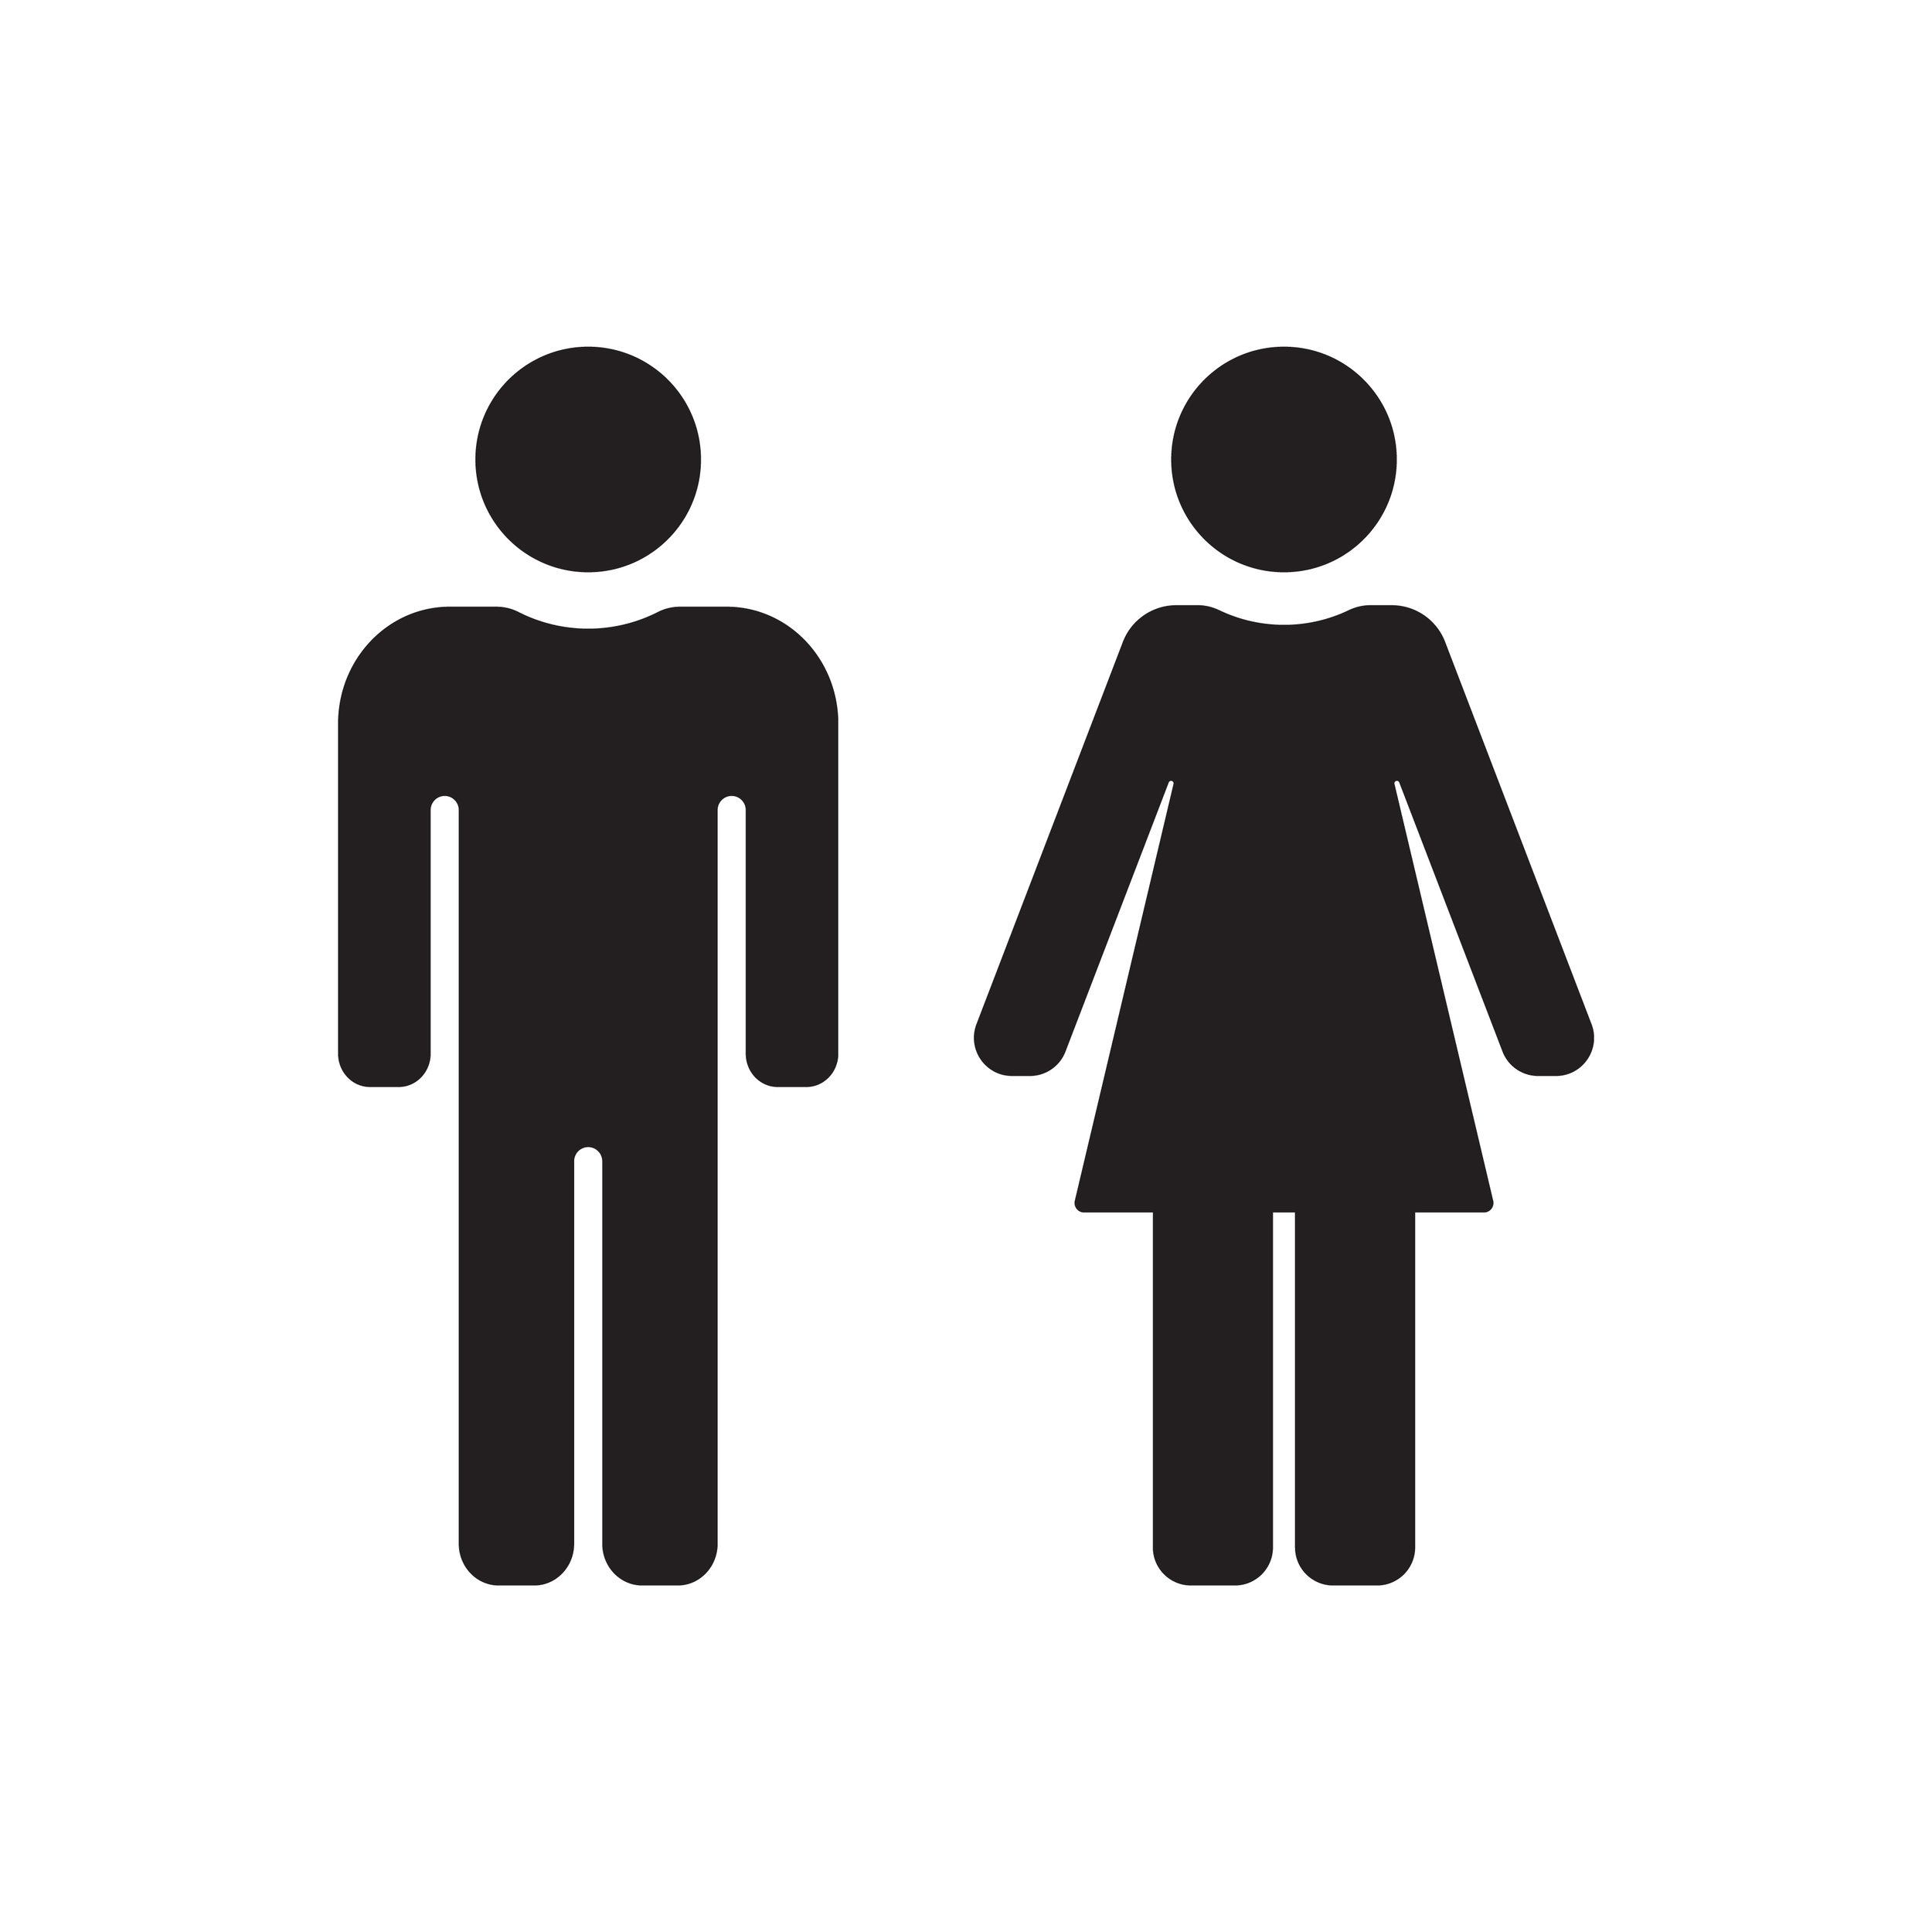 73% female to 27% male -